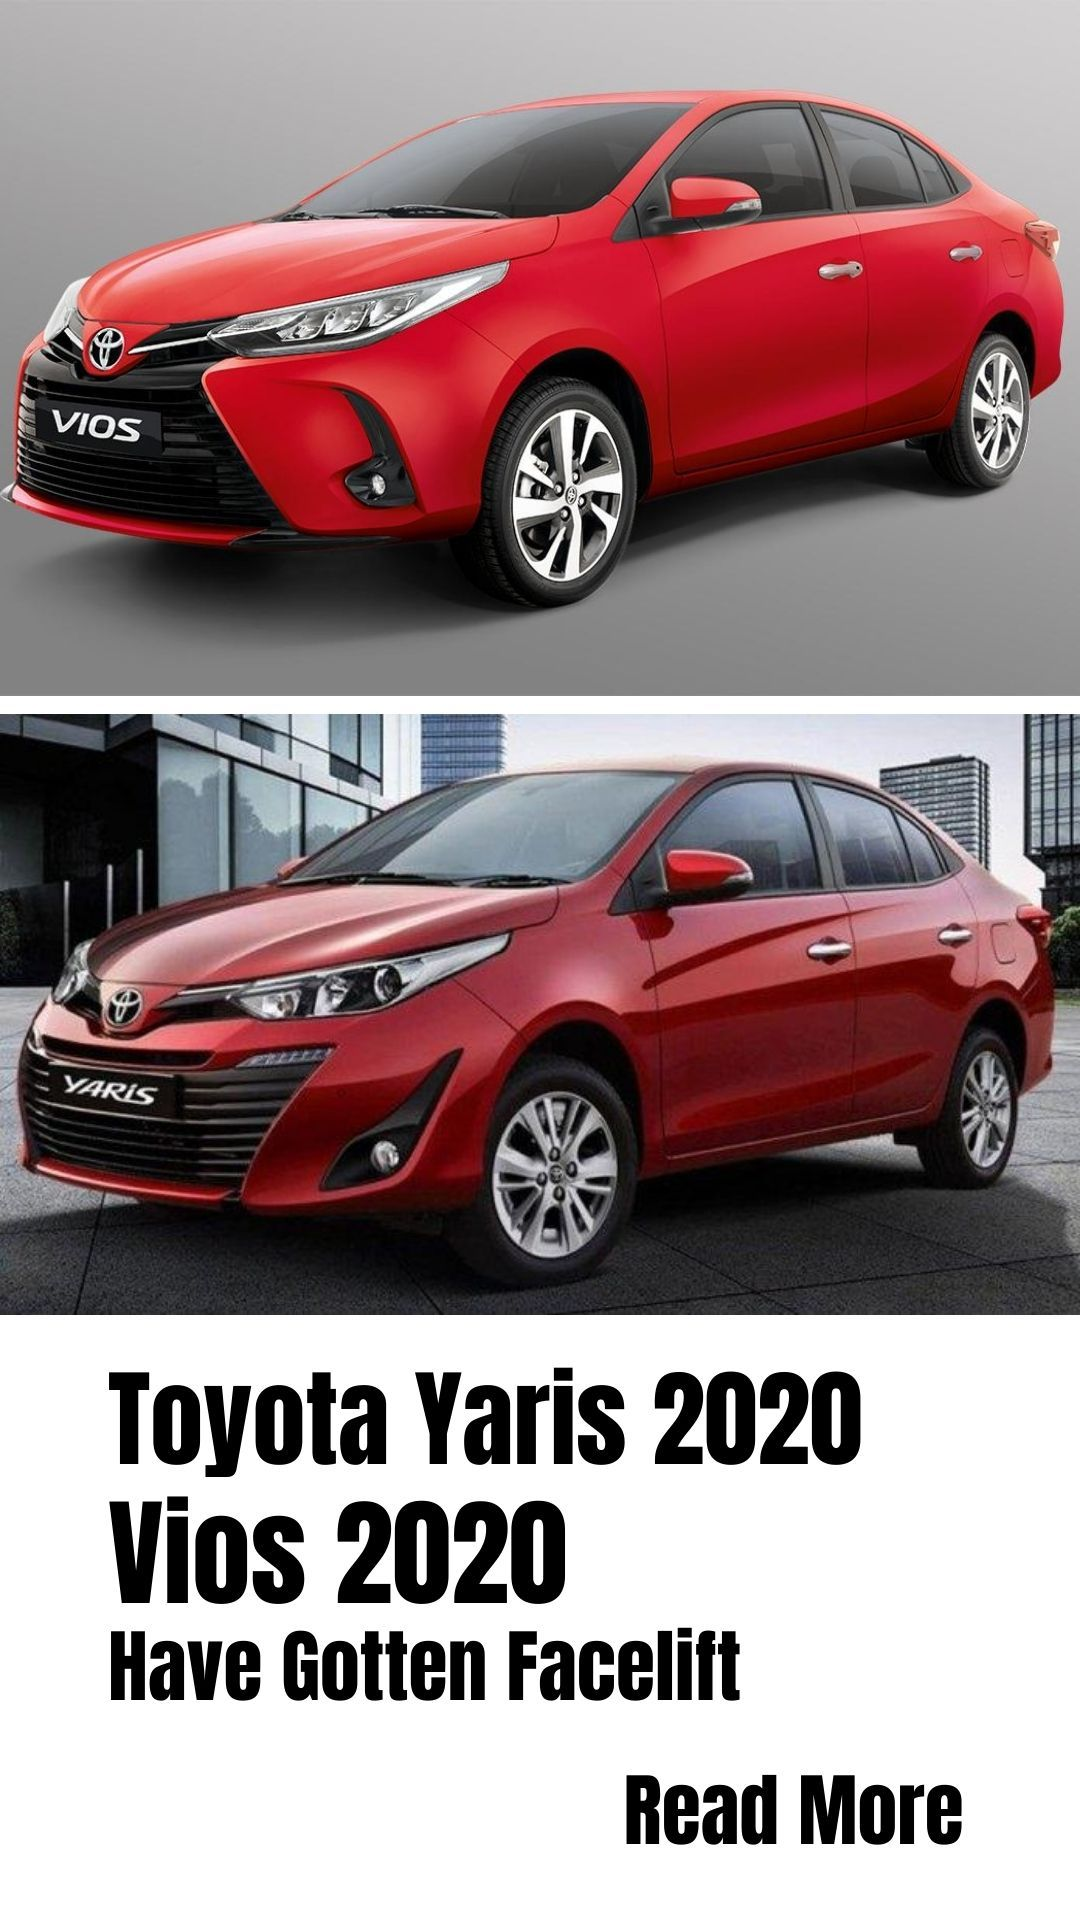 Toyota Yaris 2020 And Vios 2020 Have Gotten Facelift In 2020 Yaris Toyota Facelift